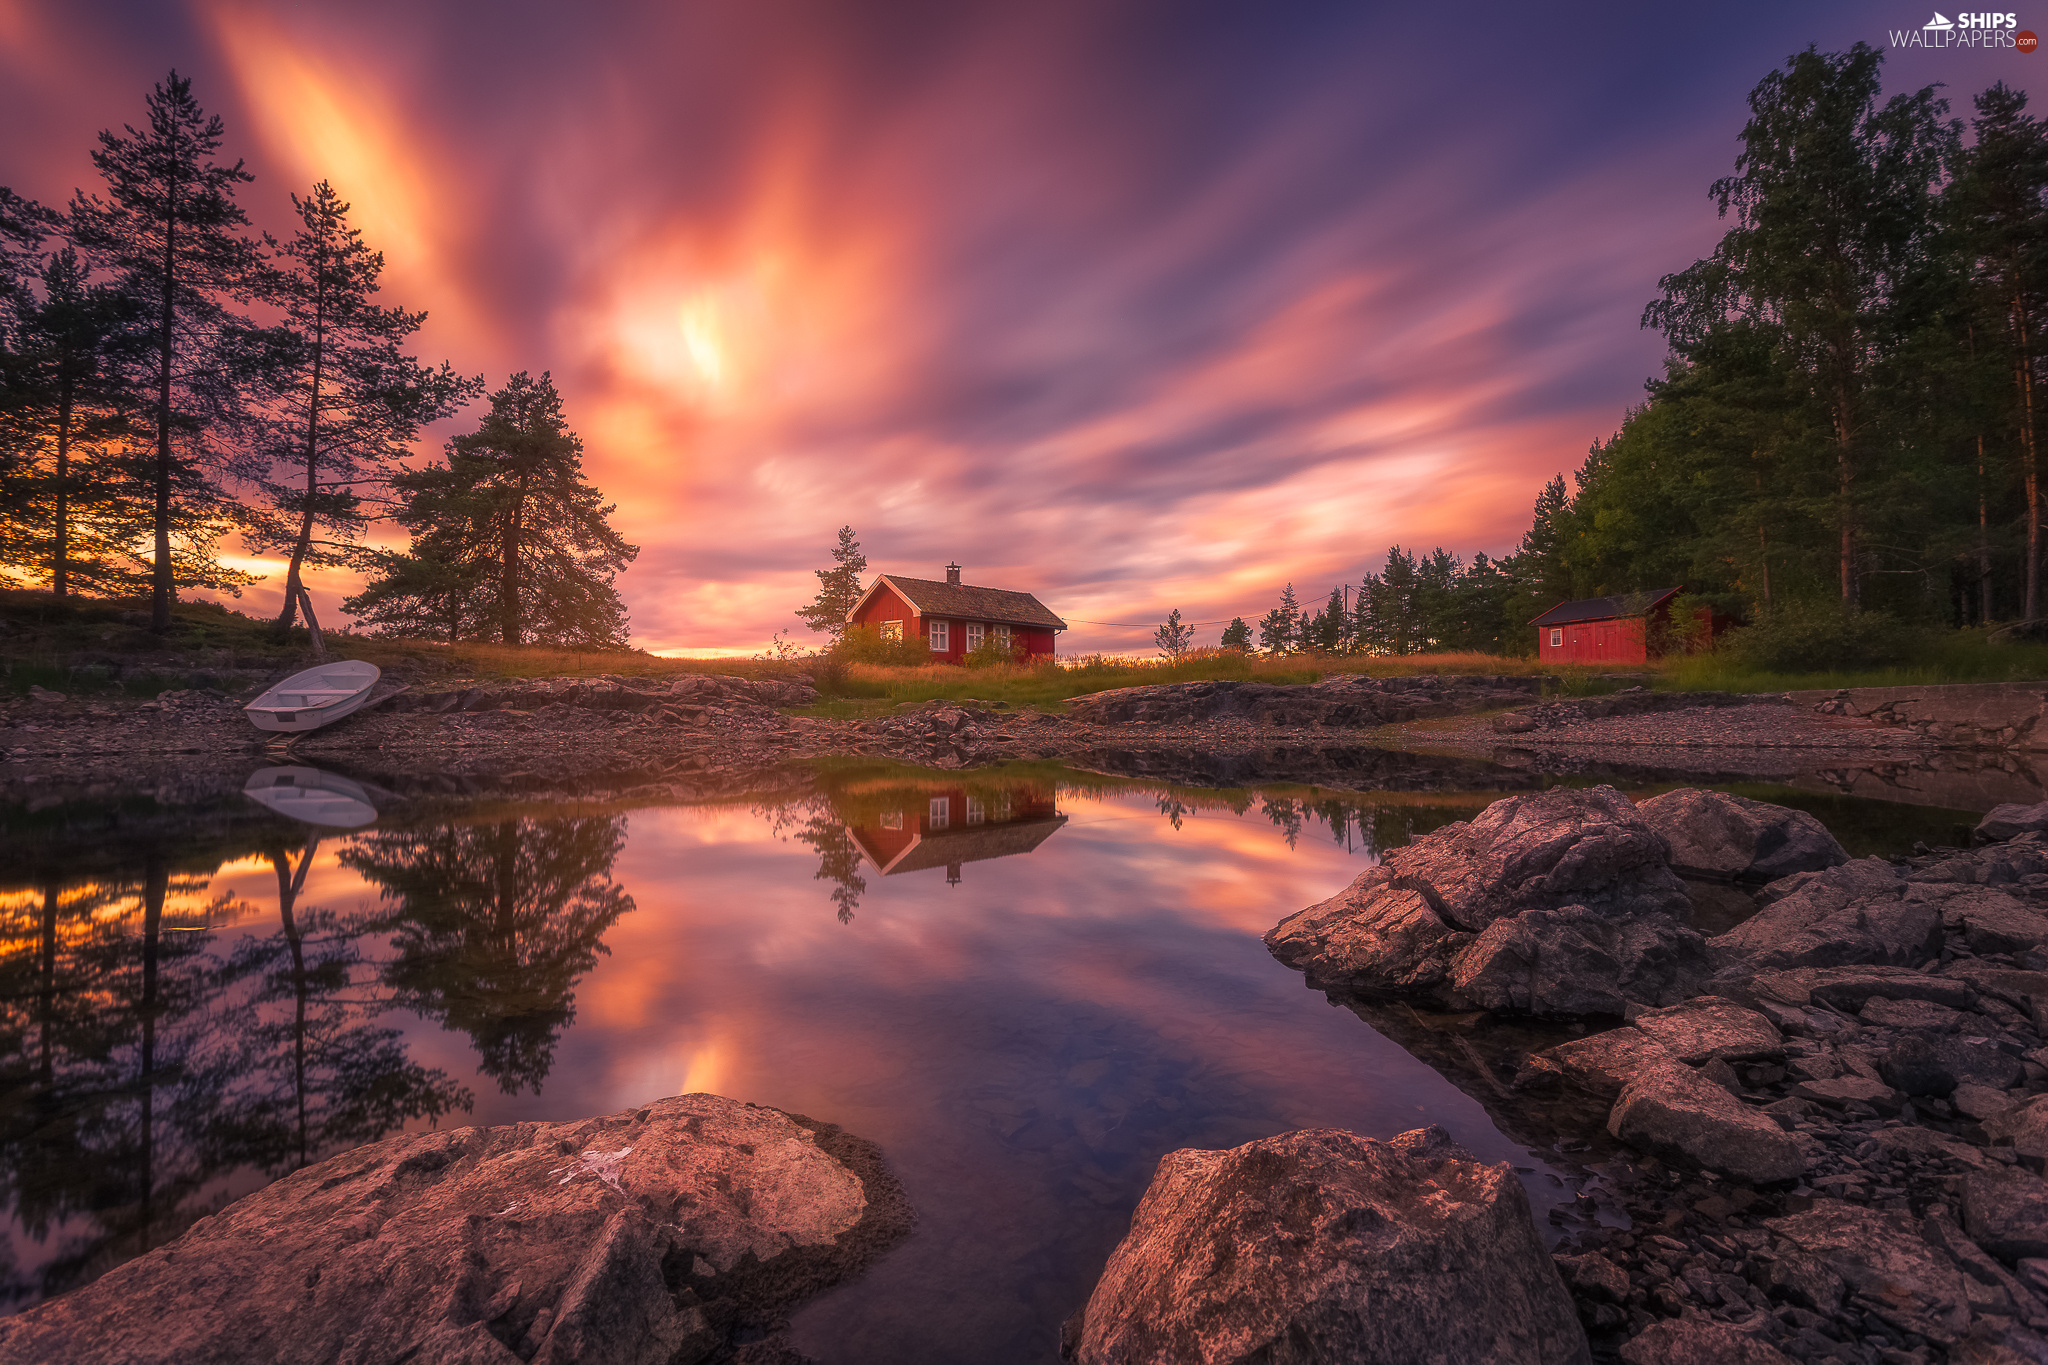 Vaeleren Lake, Great Sunsets, house, trees, Boat, Ringerike, Norway, viewes